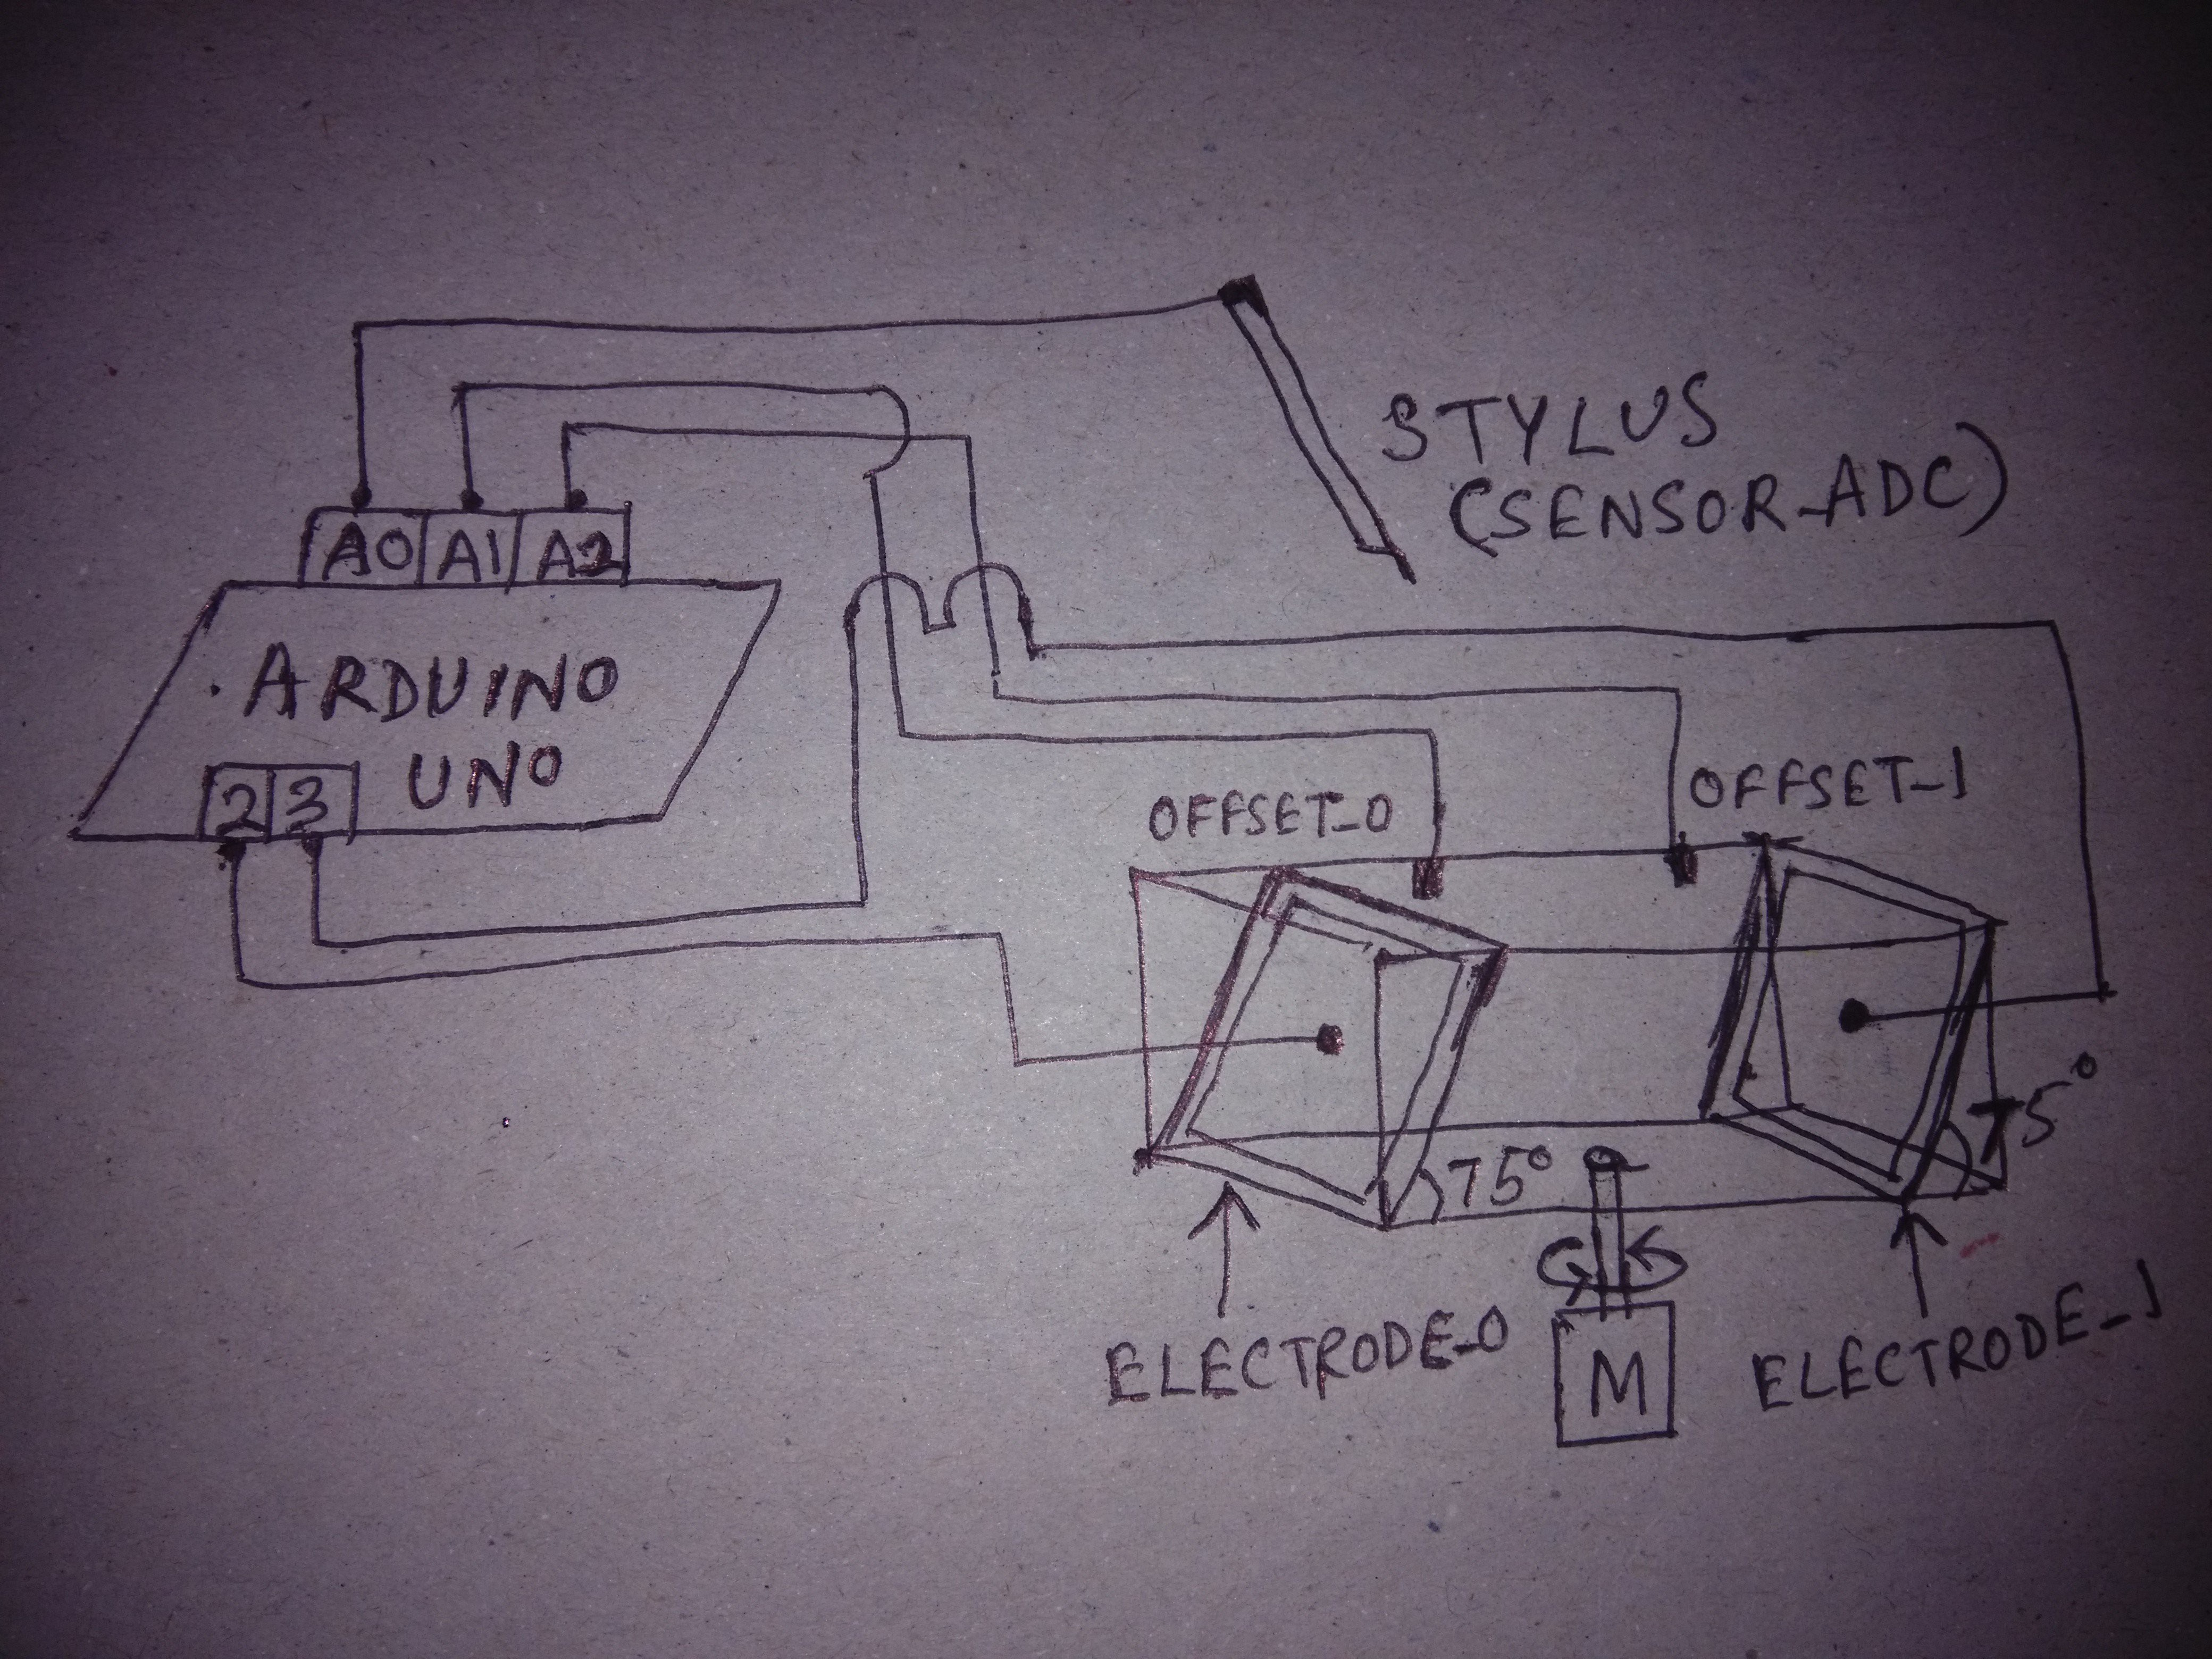 low cost accurate 3d positioning open electronics